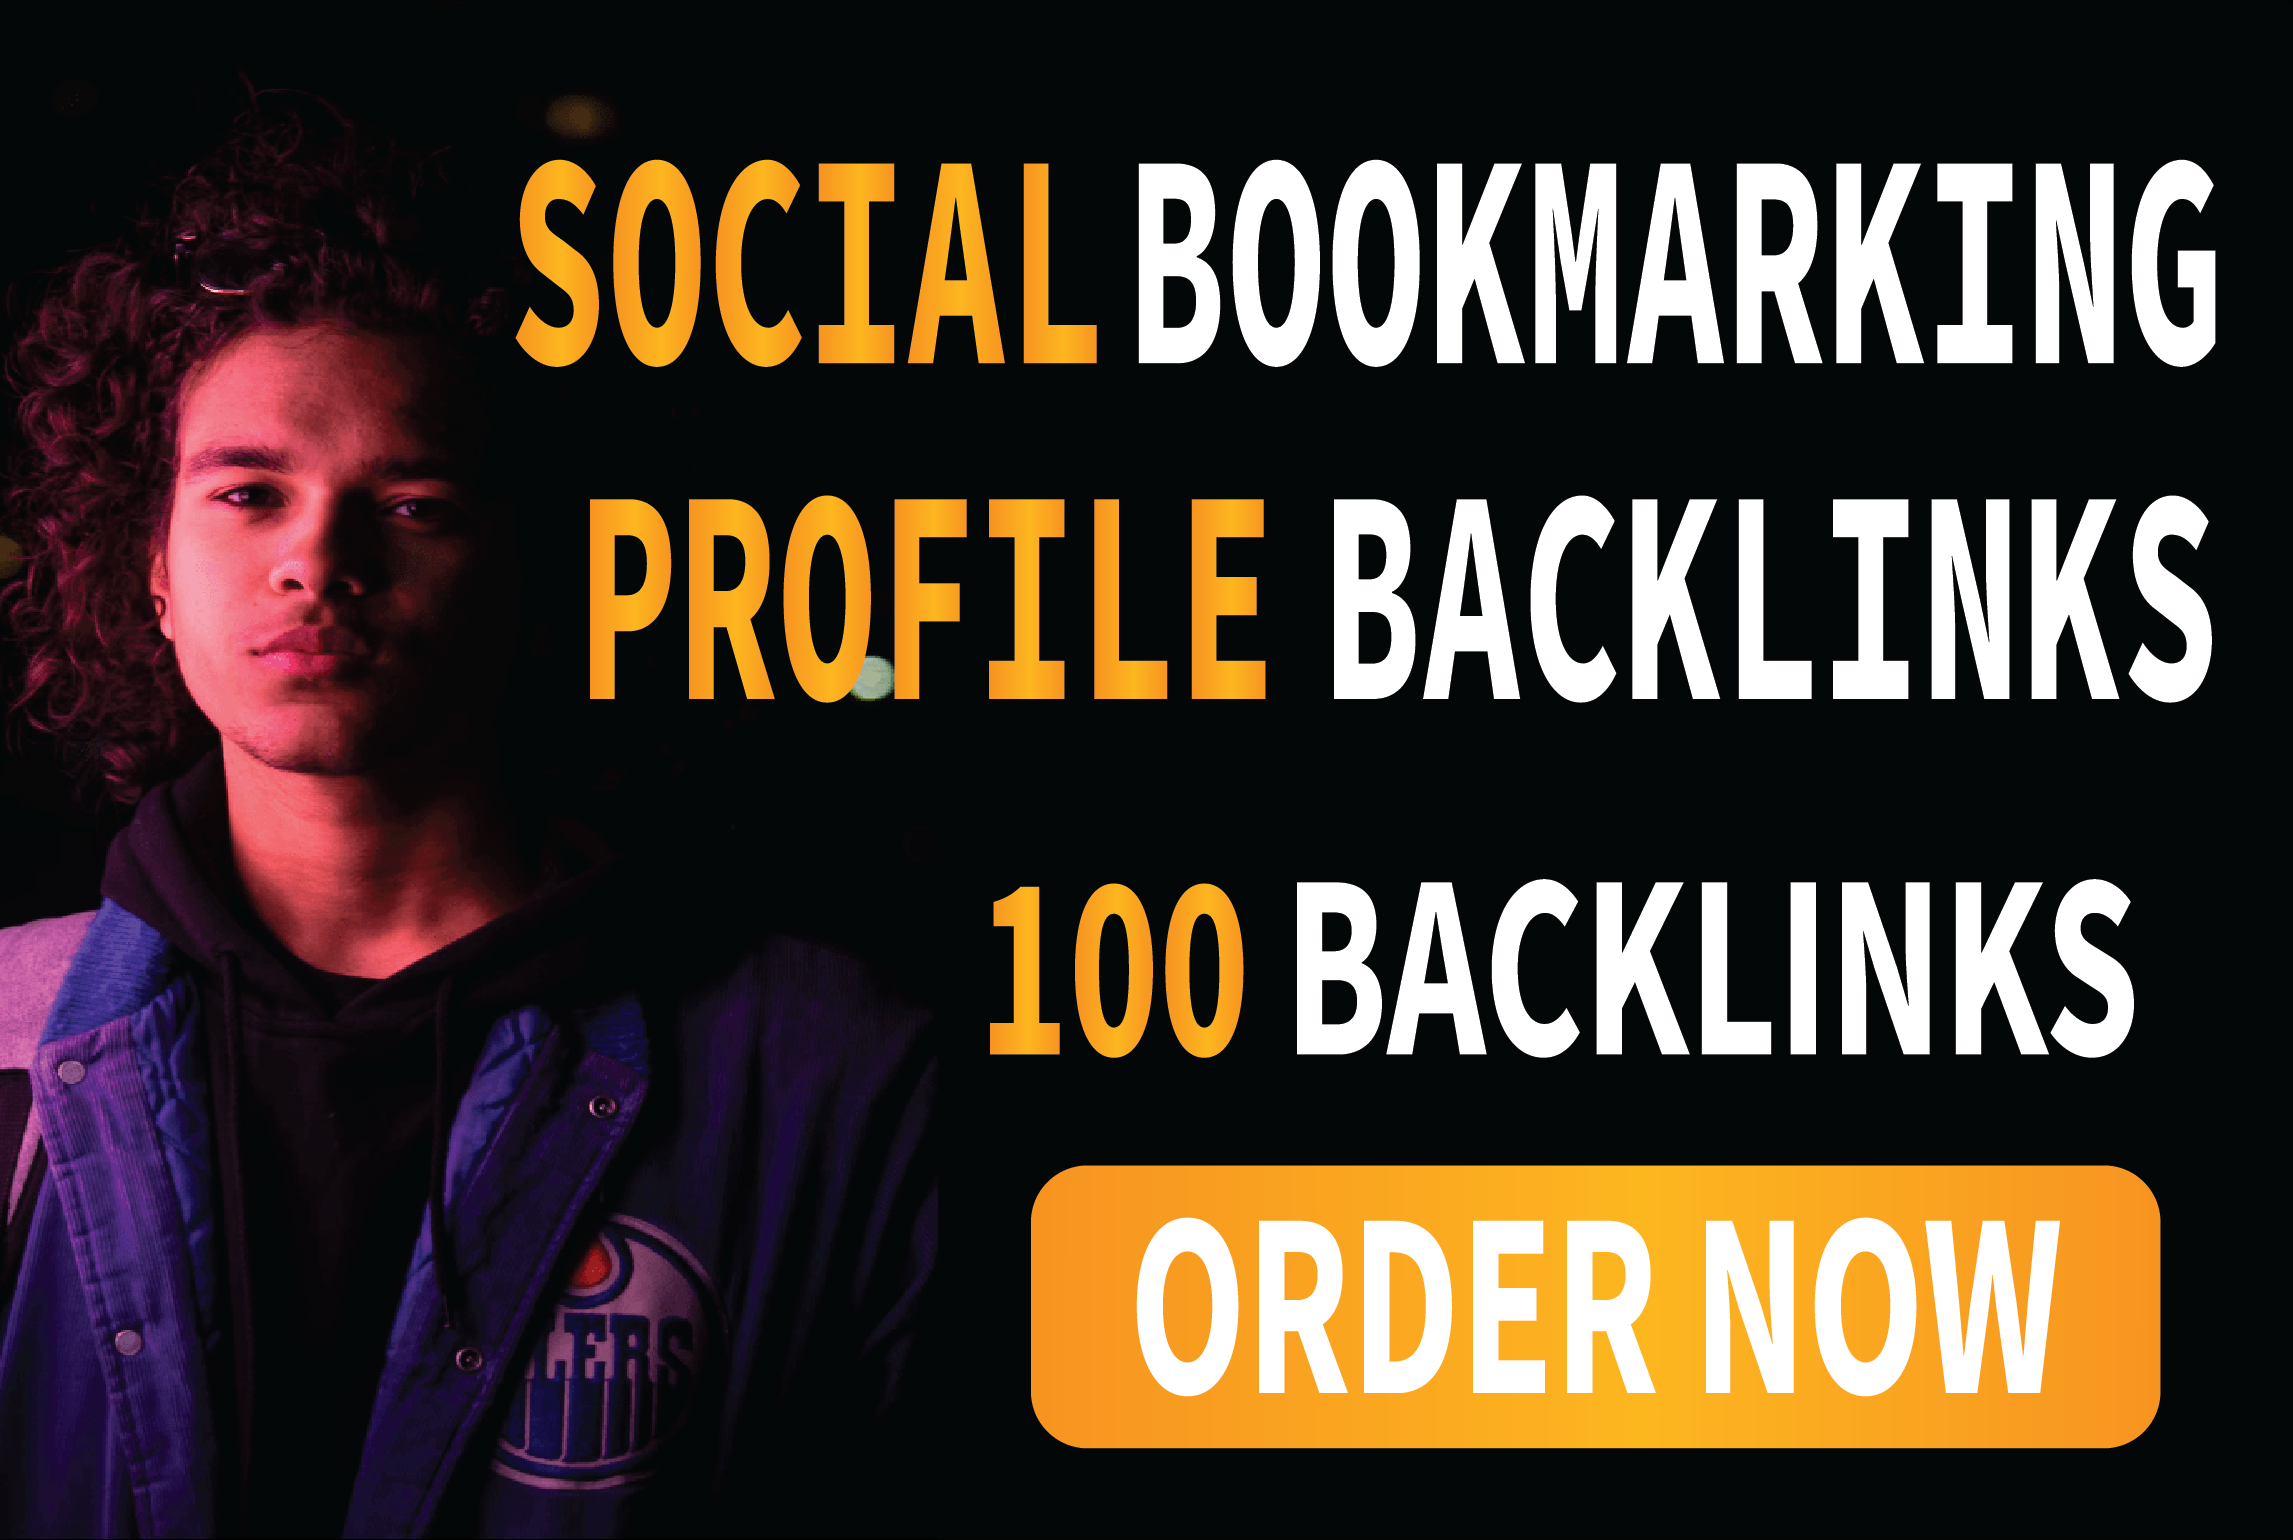 I will do 300 social bookmarking SEO profile backlinks